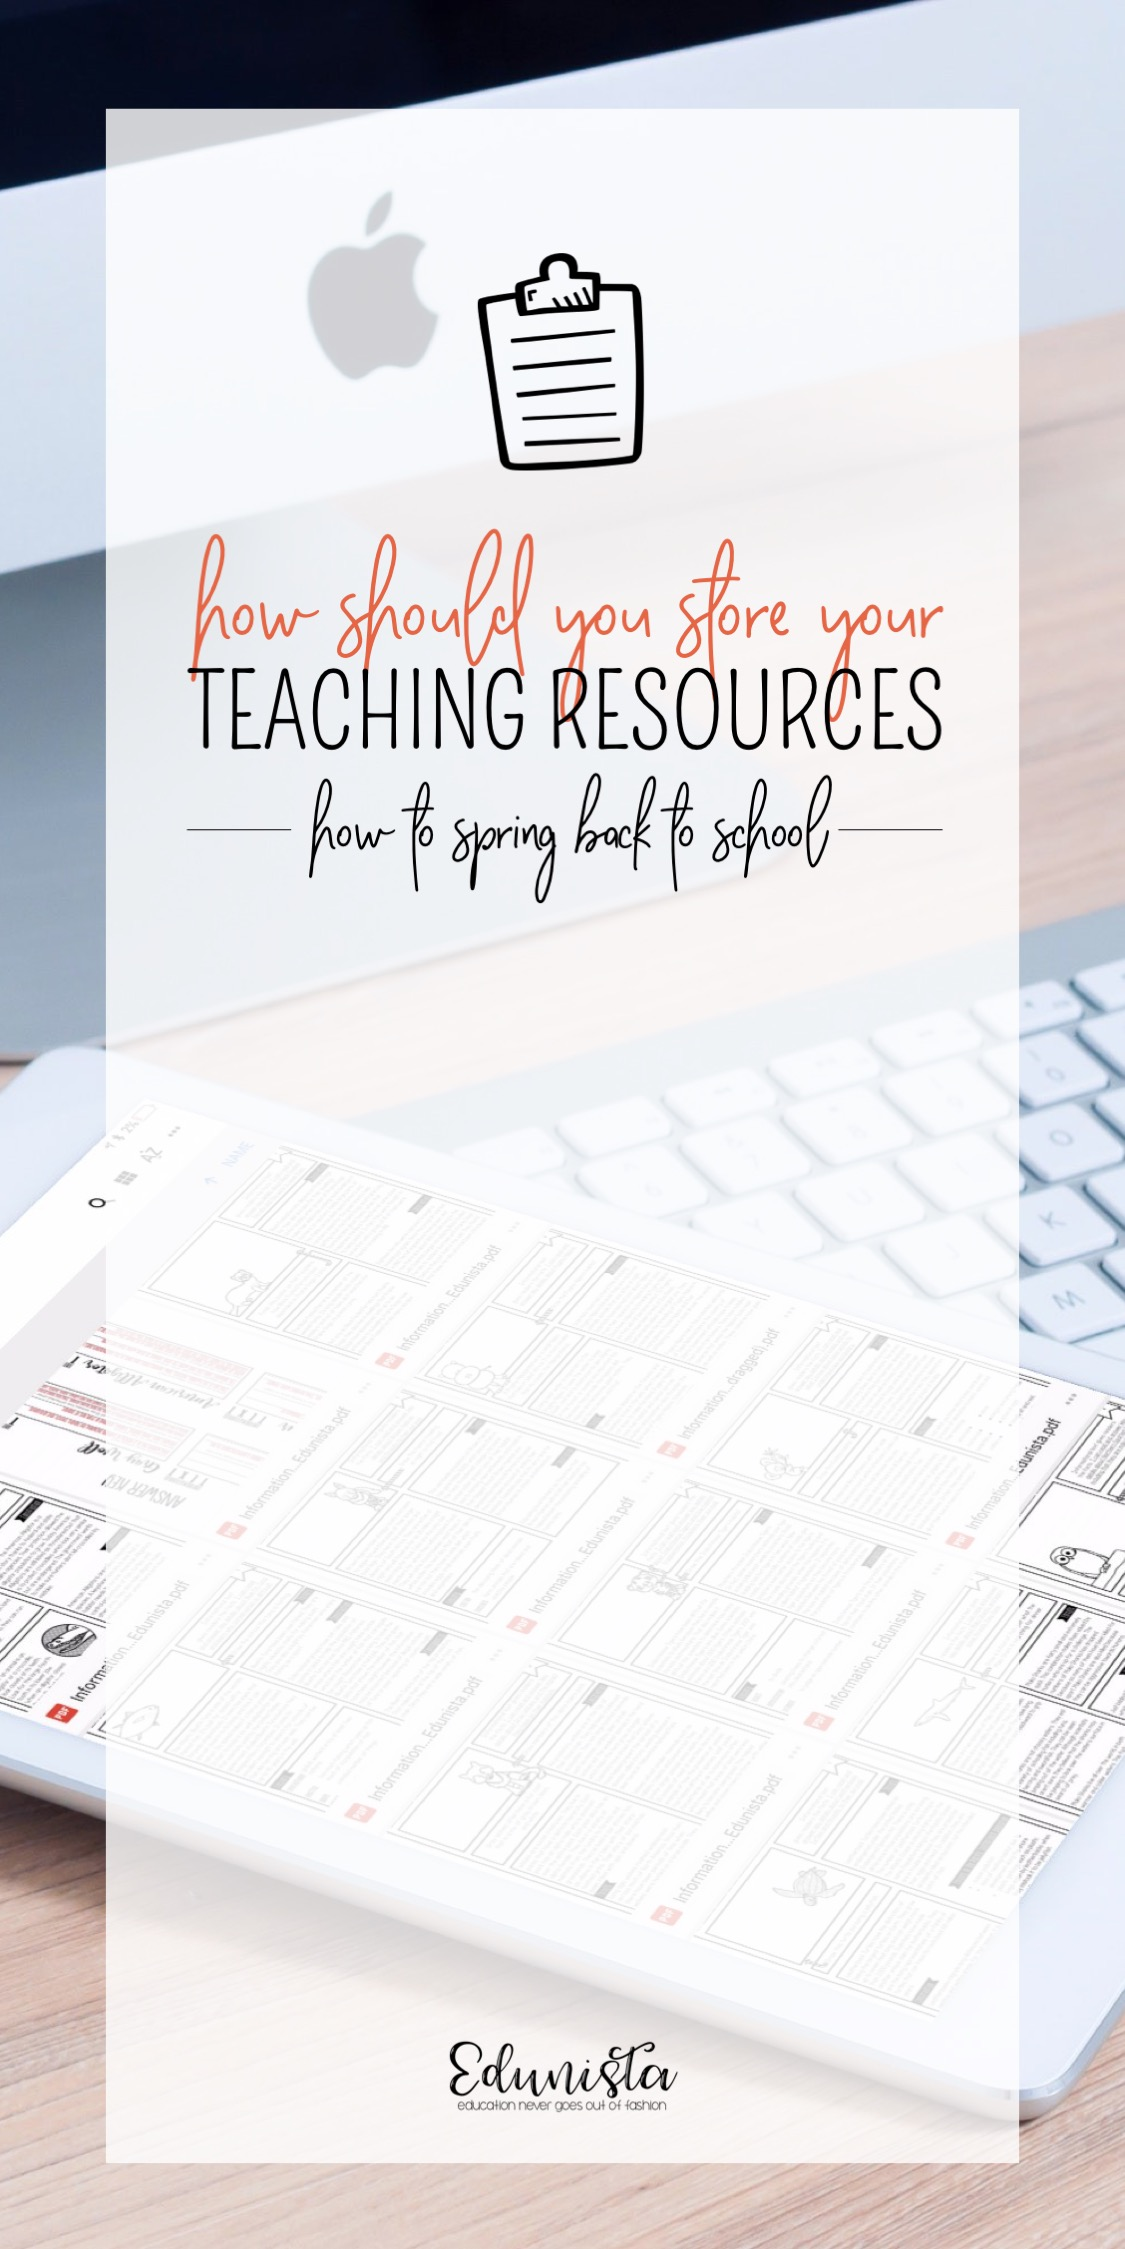 I have been so confused about how to organize and store my teaching resources for so long! This article was so helpful! Now my lessons are organized! I can find what I need quickly and easily!